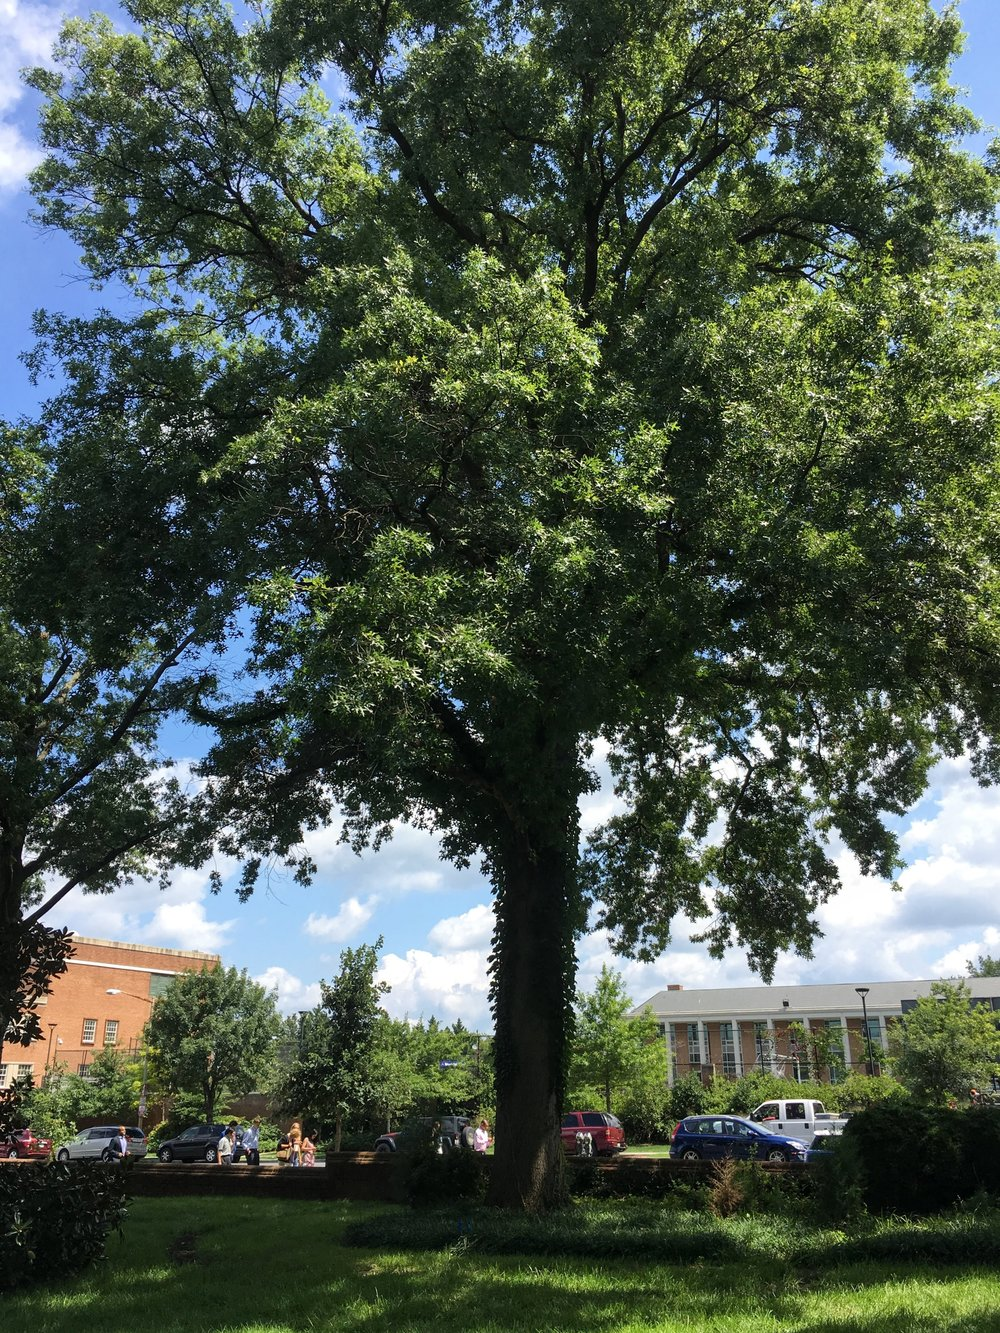 This pin oak (Quercus palustris) in Washington, D.C. is a Heritage Tree protected by the District's Tree Canopy Protection regulations.